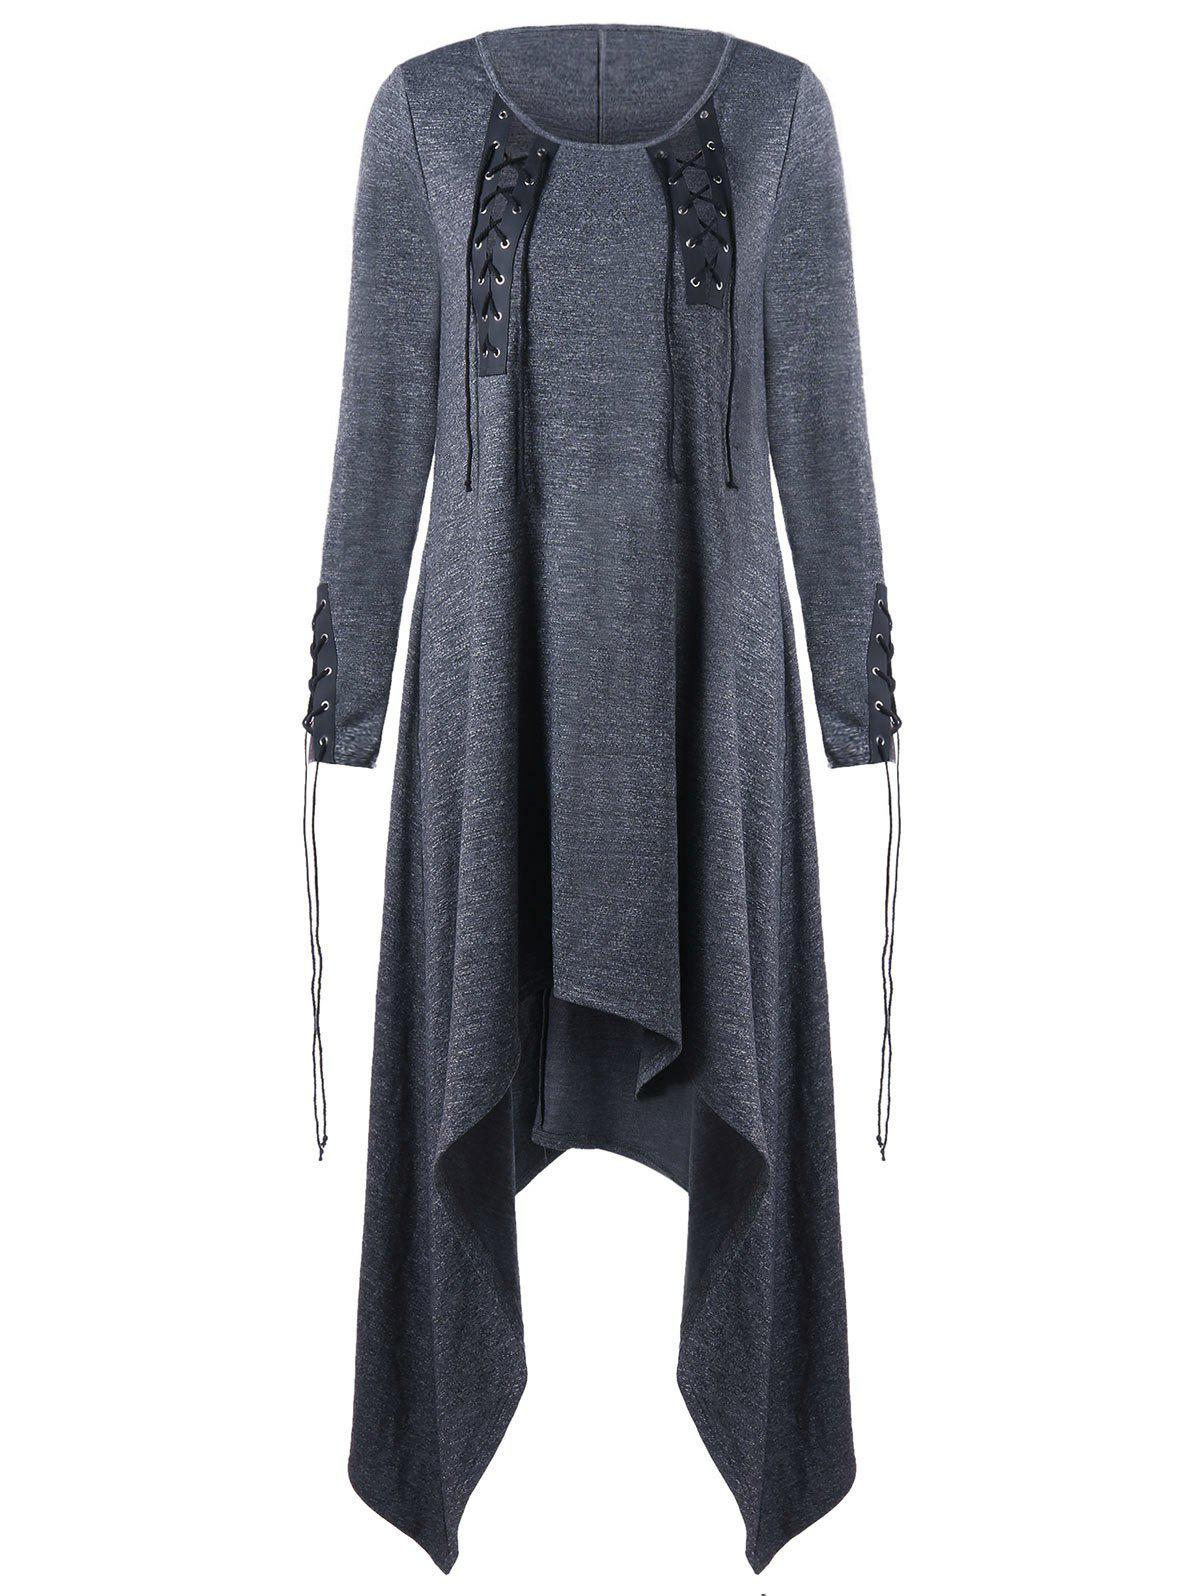 Asymmetric Lace Up Long Sleeve Dress - GRAY 2XL